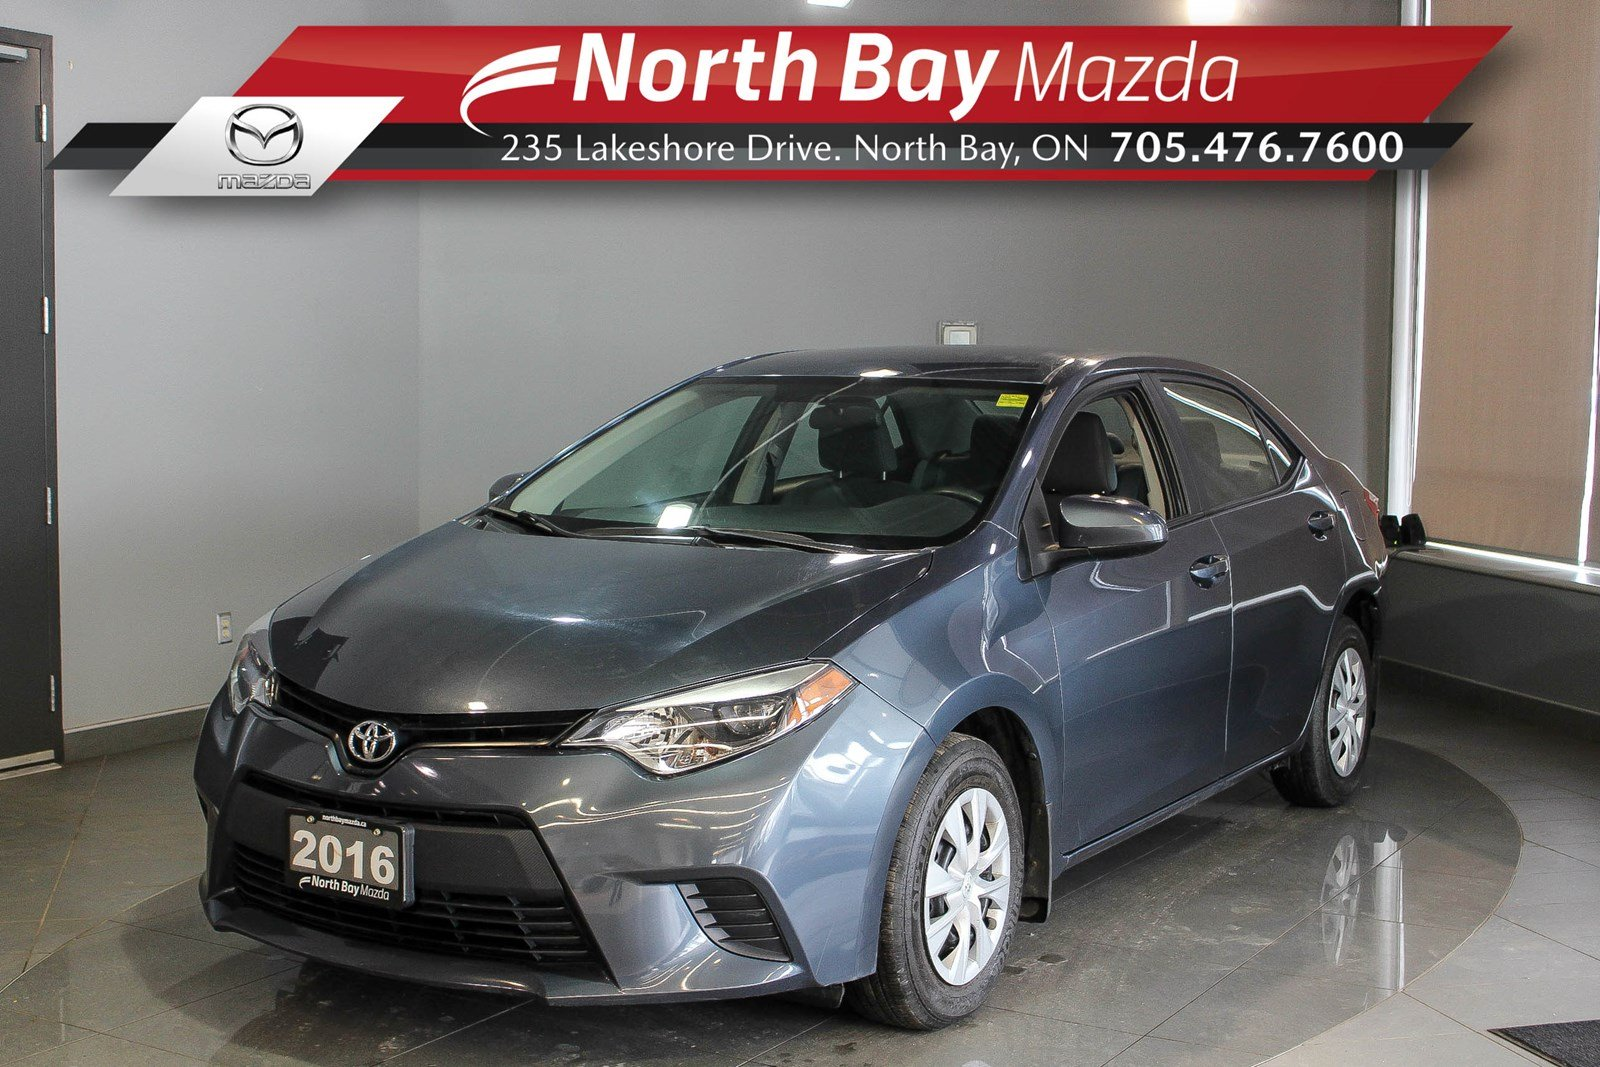 Pre-Owned 2016 Toyota Corolla CE with Bluetooth, Cruise, Cloth Interior